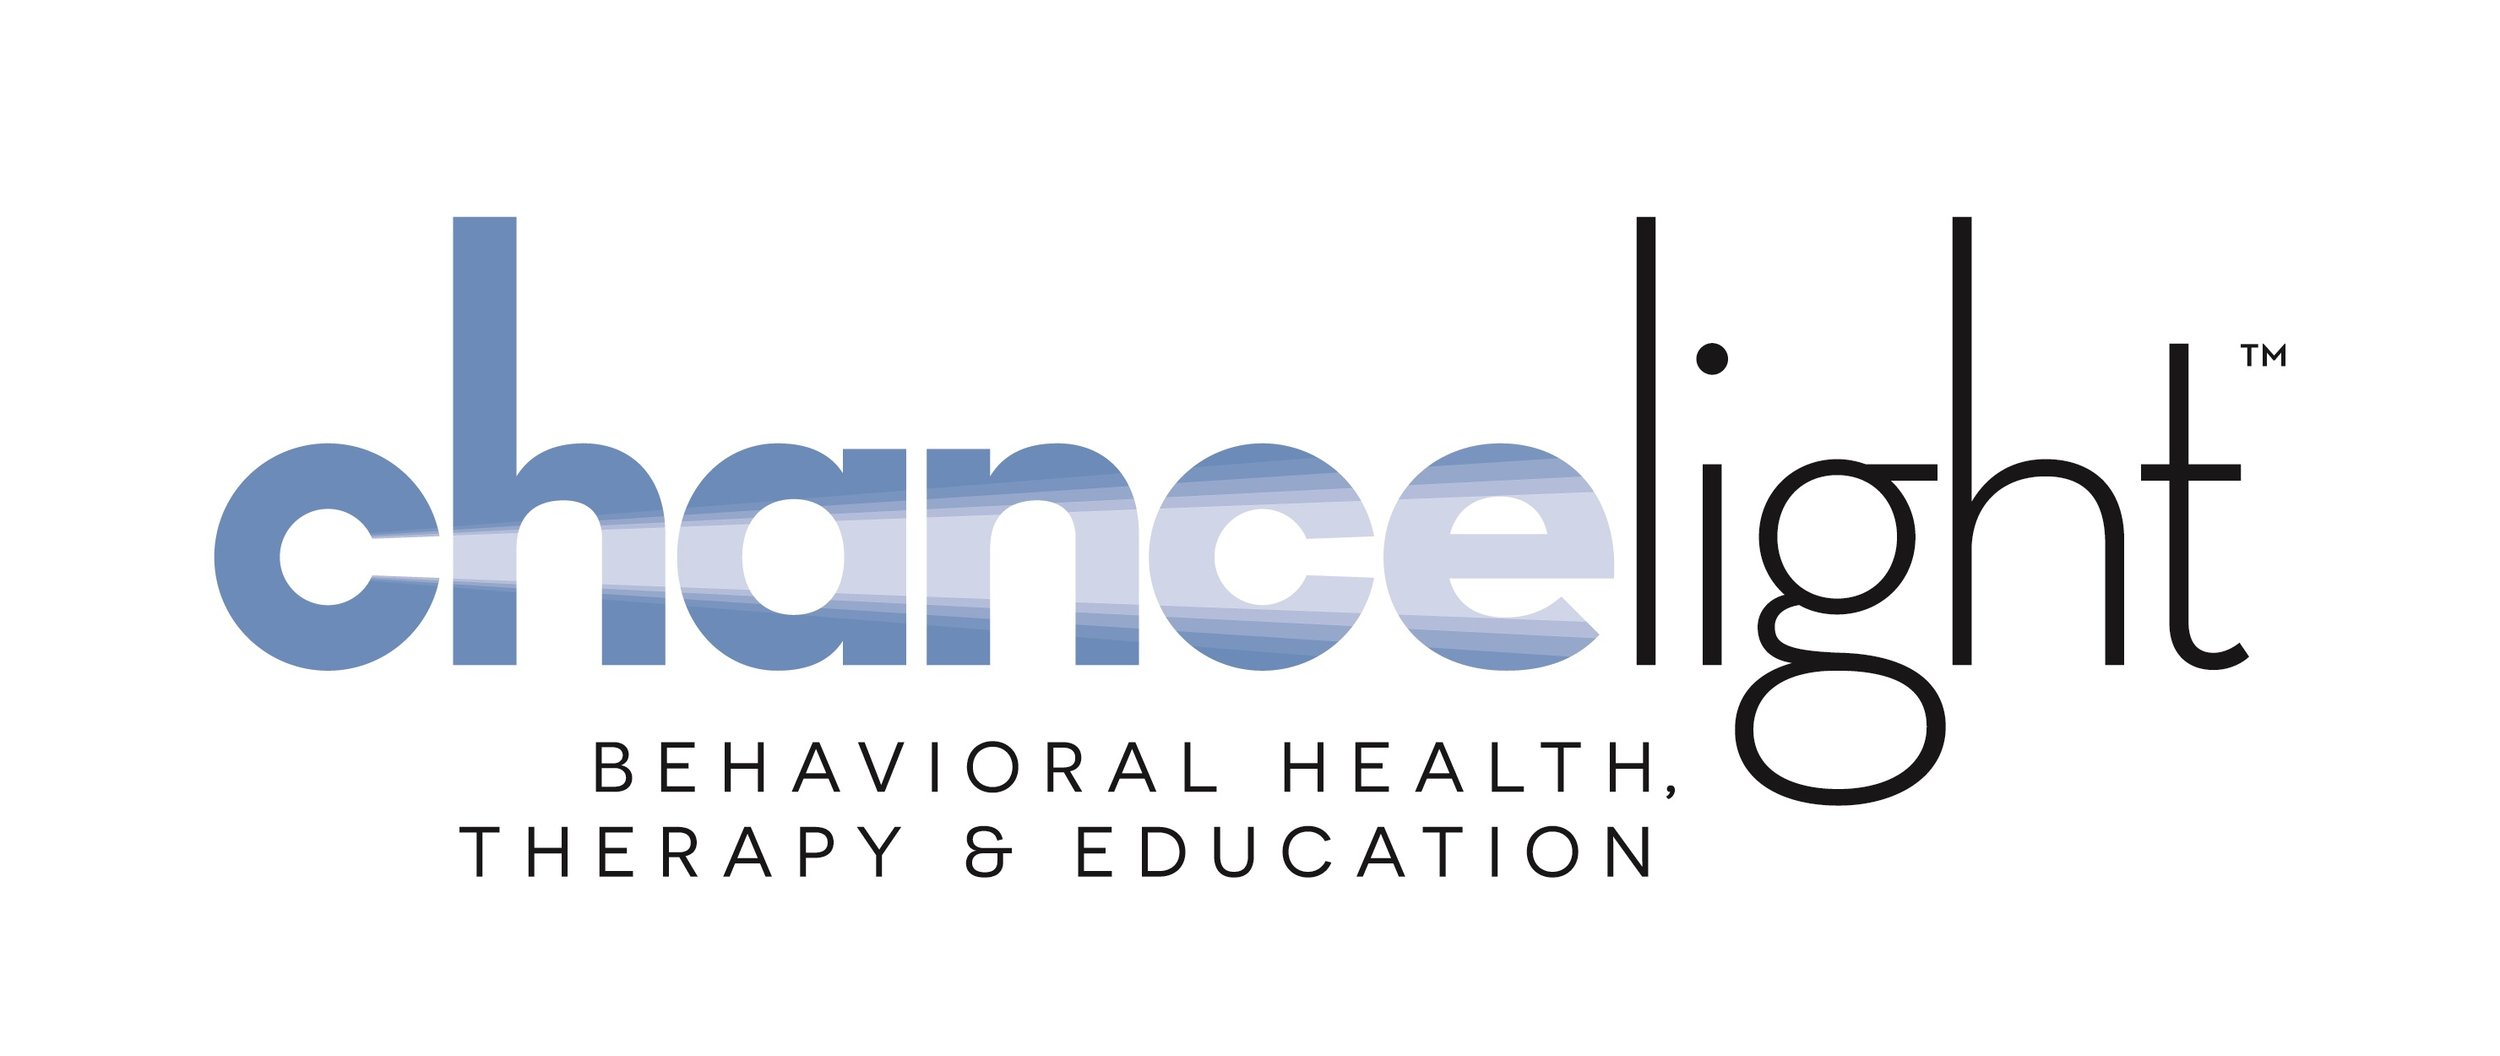 chancelight-print-h-logo-blueblack-therapy.jpg